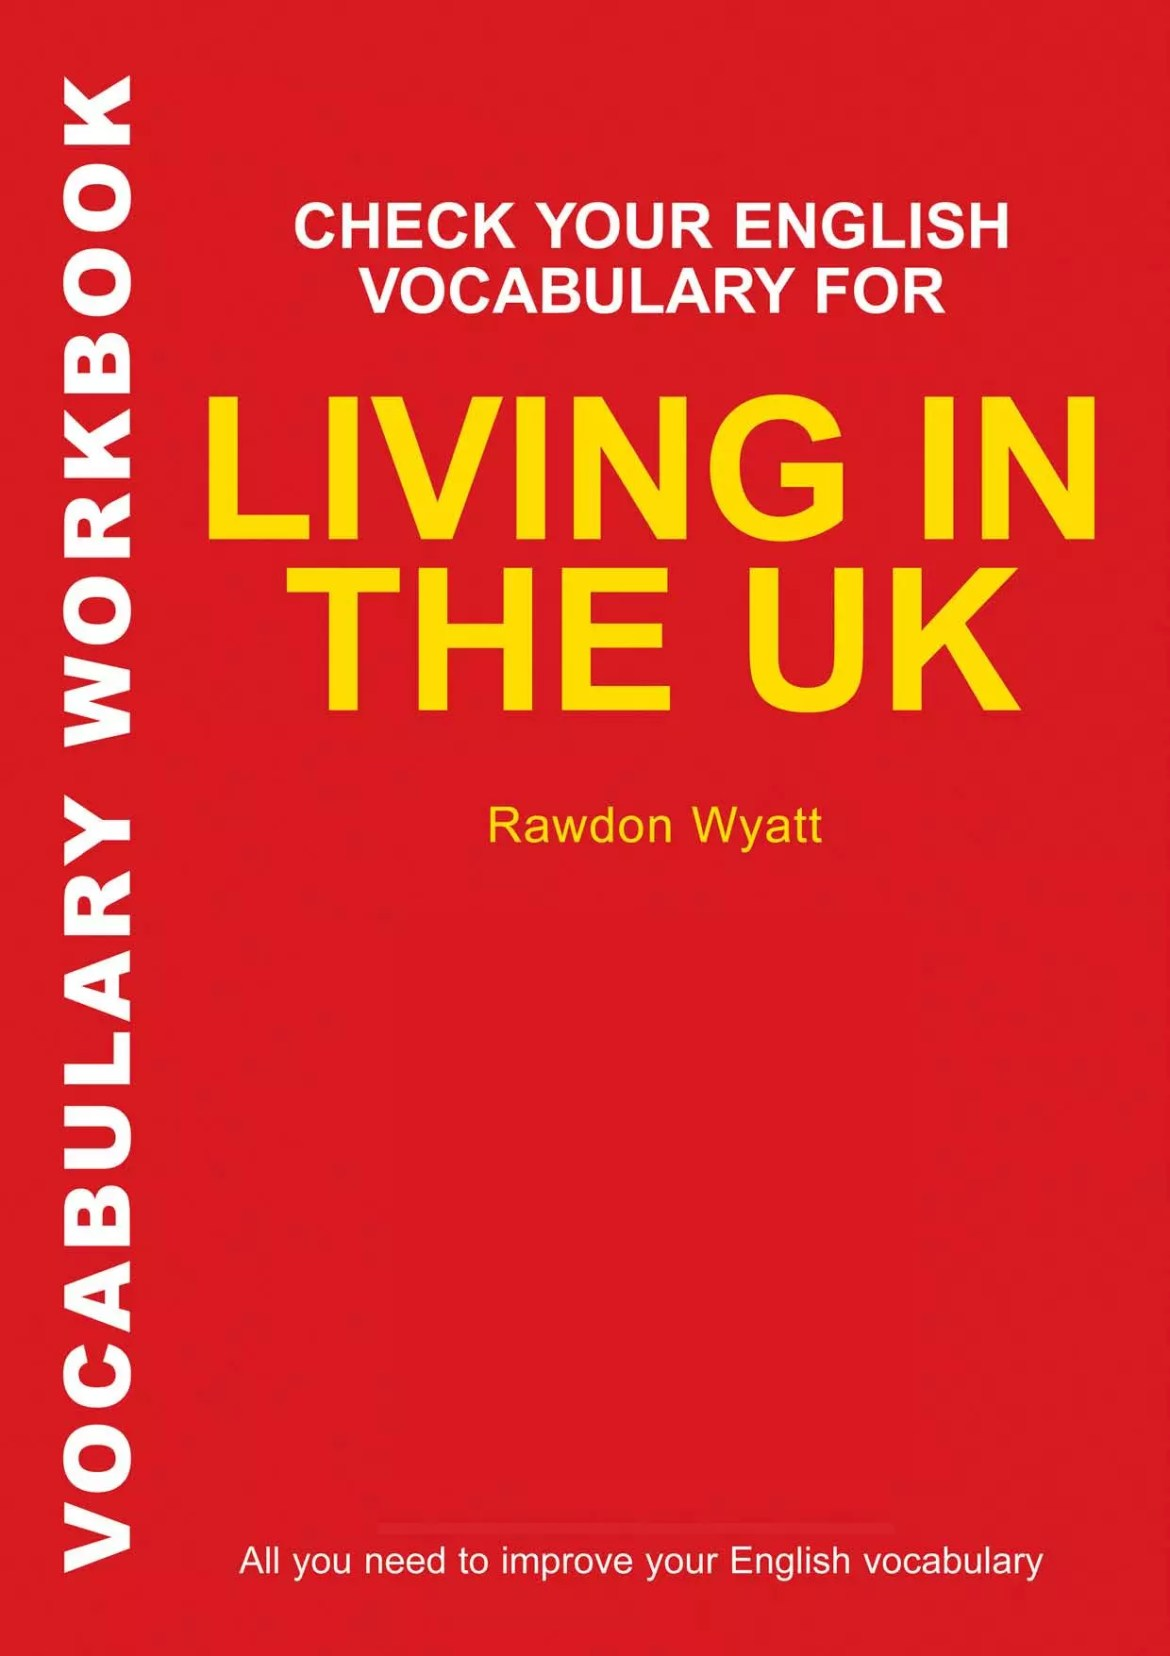 Check your vocabulary for Living in the UK by Rawdon Wyatt